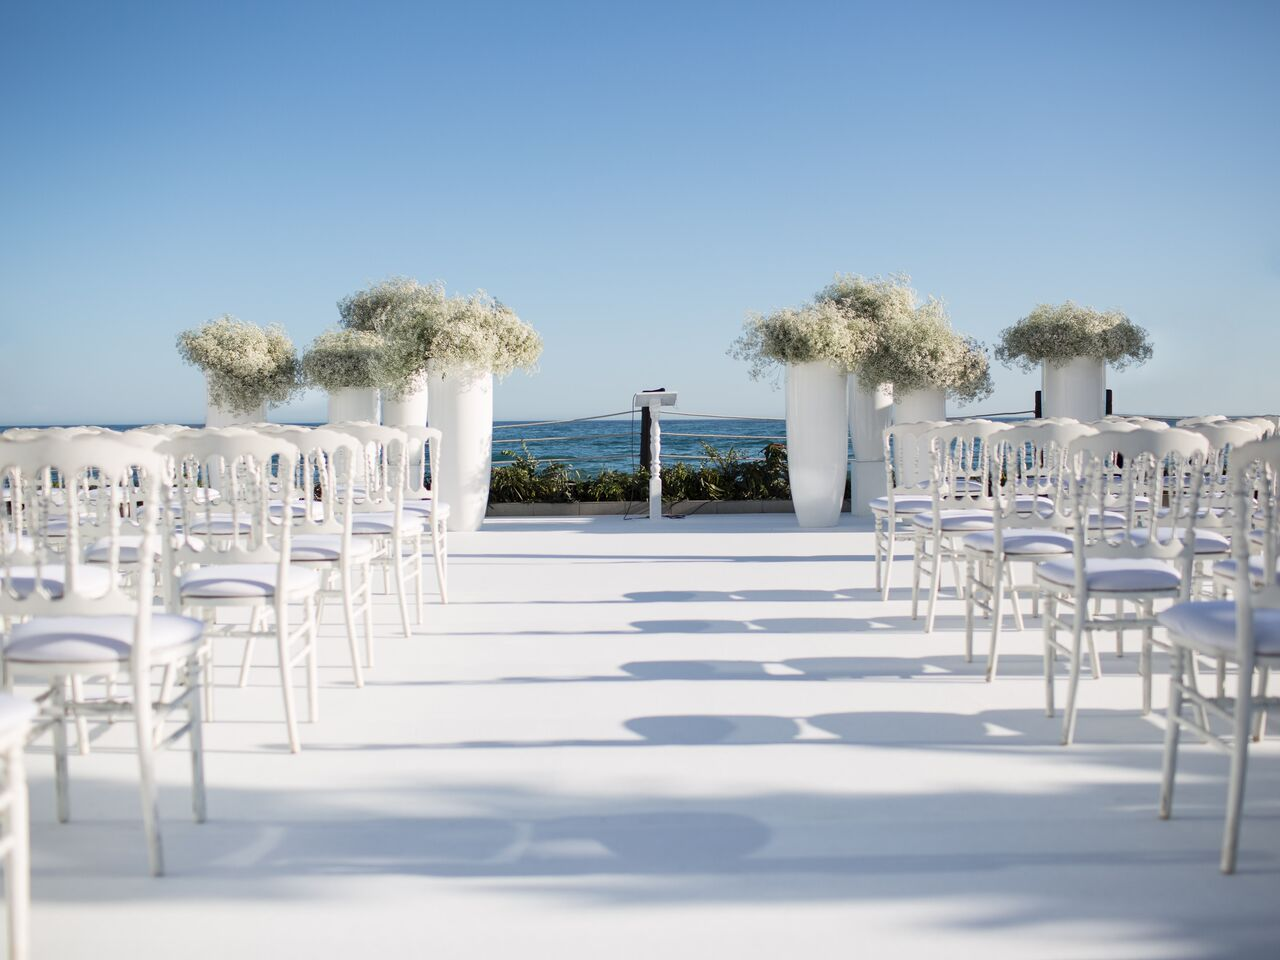 Si-Quiero-Wedding-Planner-By-Sira-Antequera-N-M-6